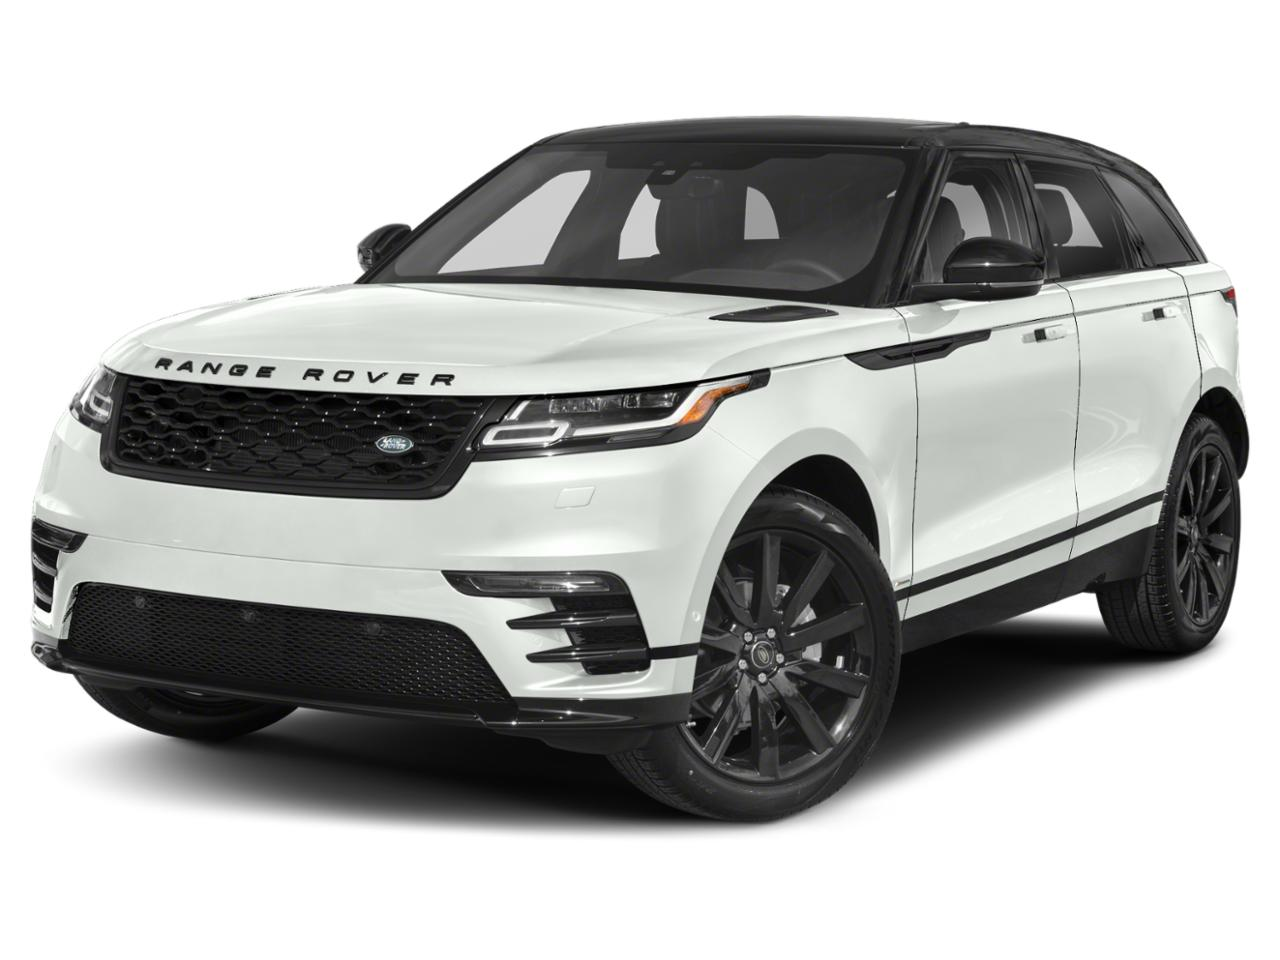 2019 Land Rover Range Rover Velar Vehicle Photo in Allentown, PA 18103